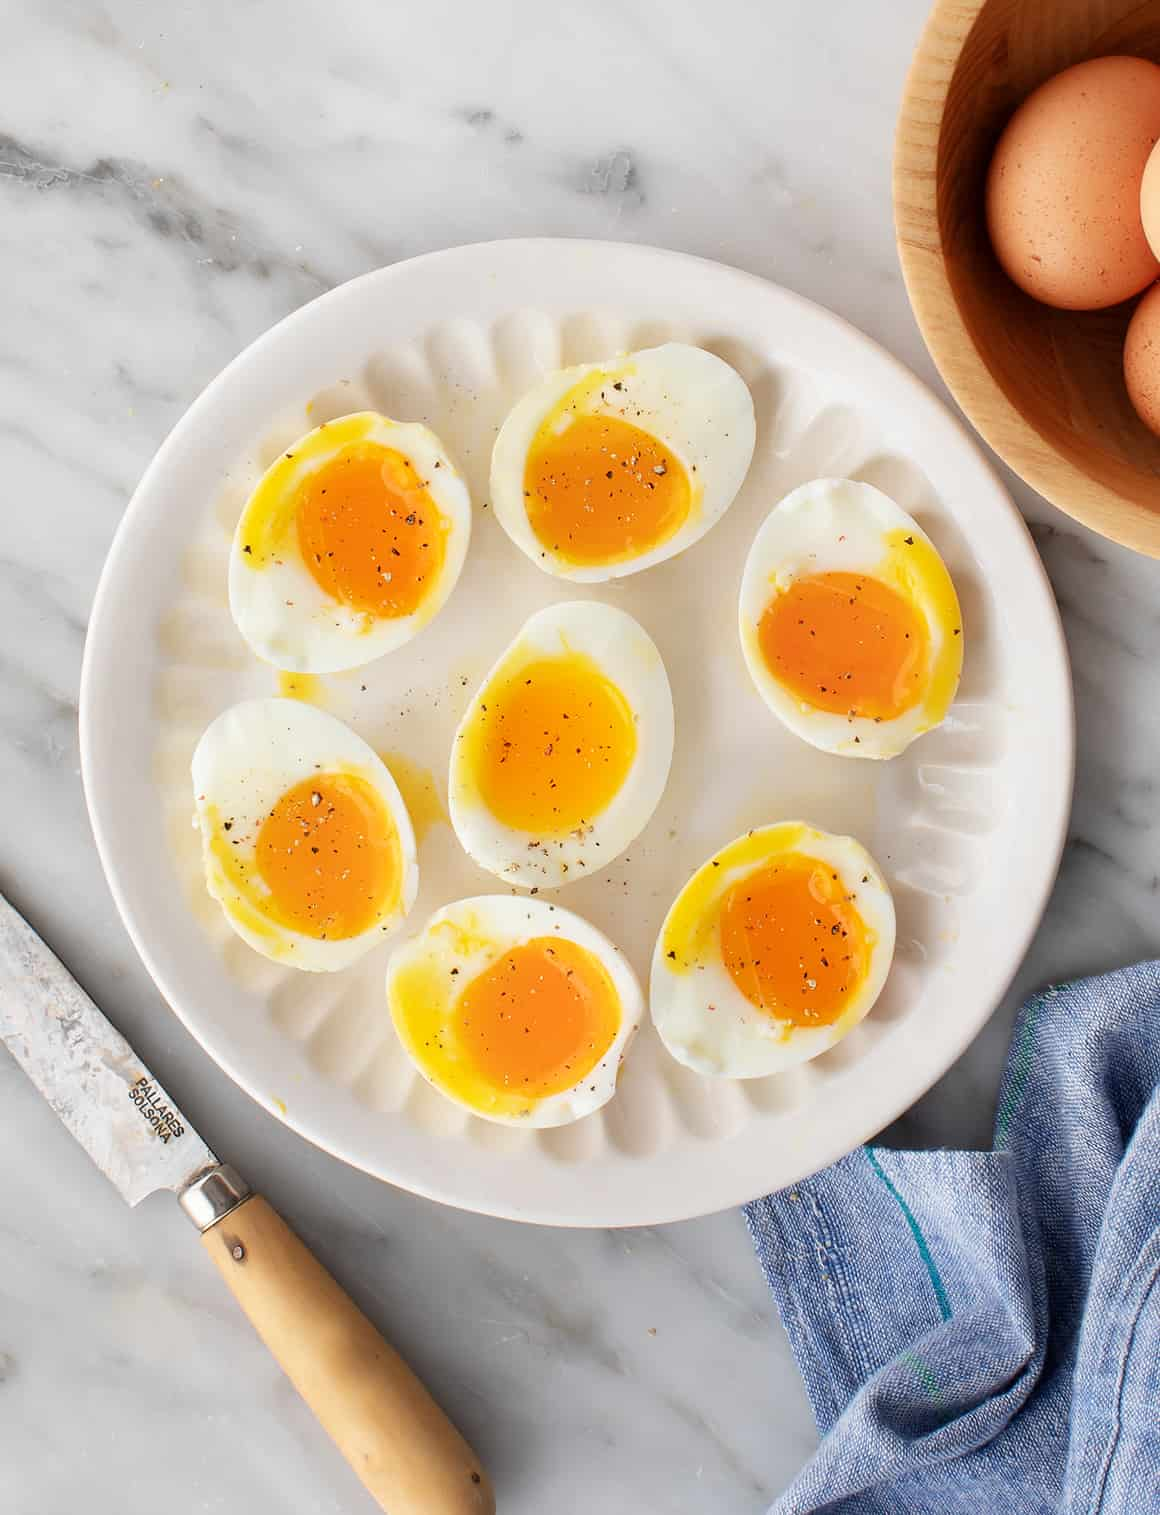 How to Make Soft Boiled Eggs